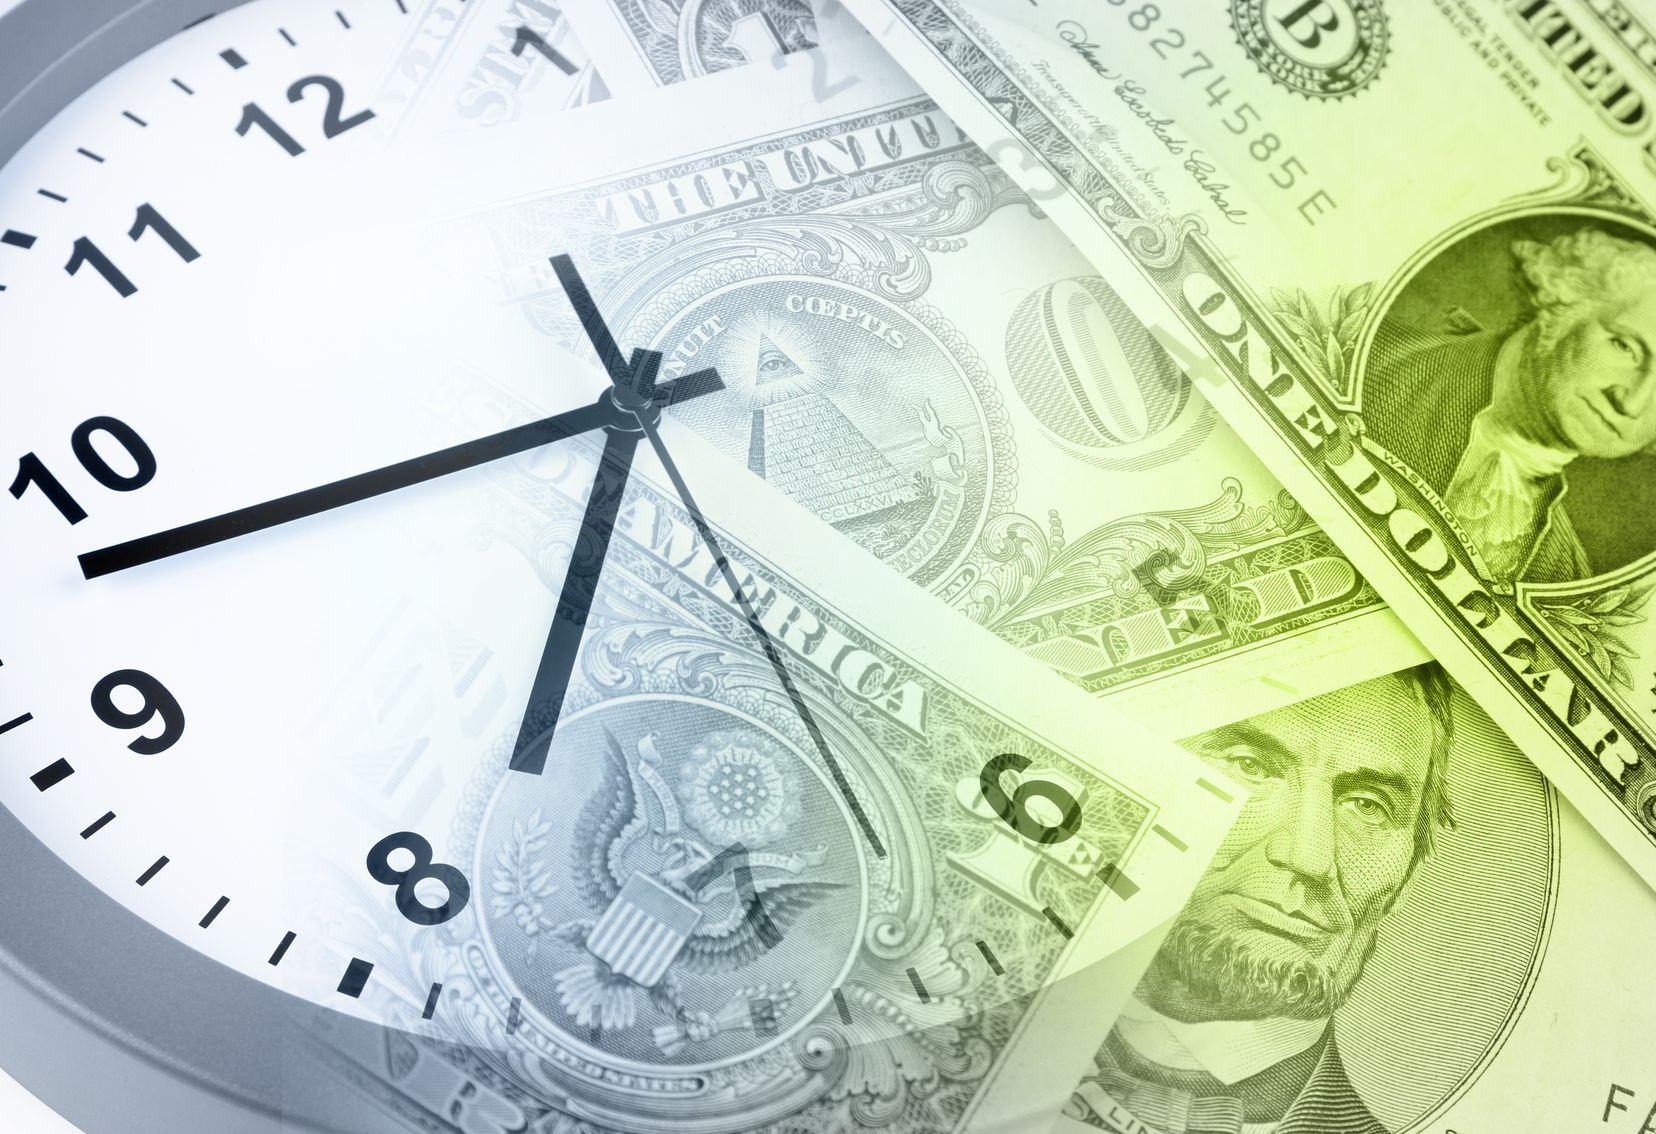 Getting your finances in order takes some time so be patient - it can't happen over night